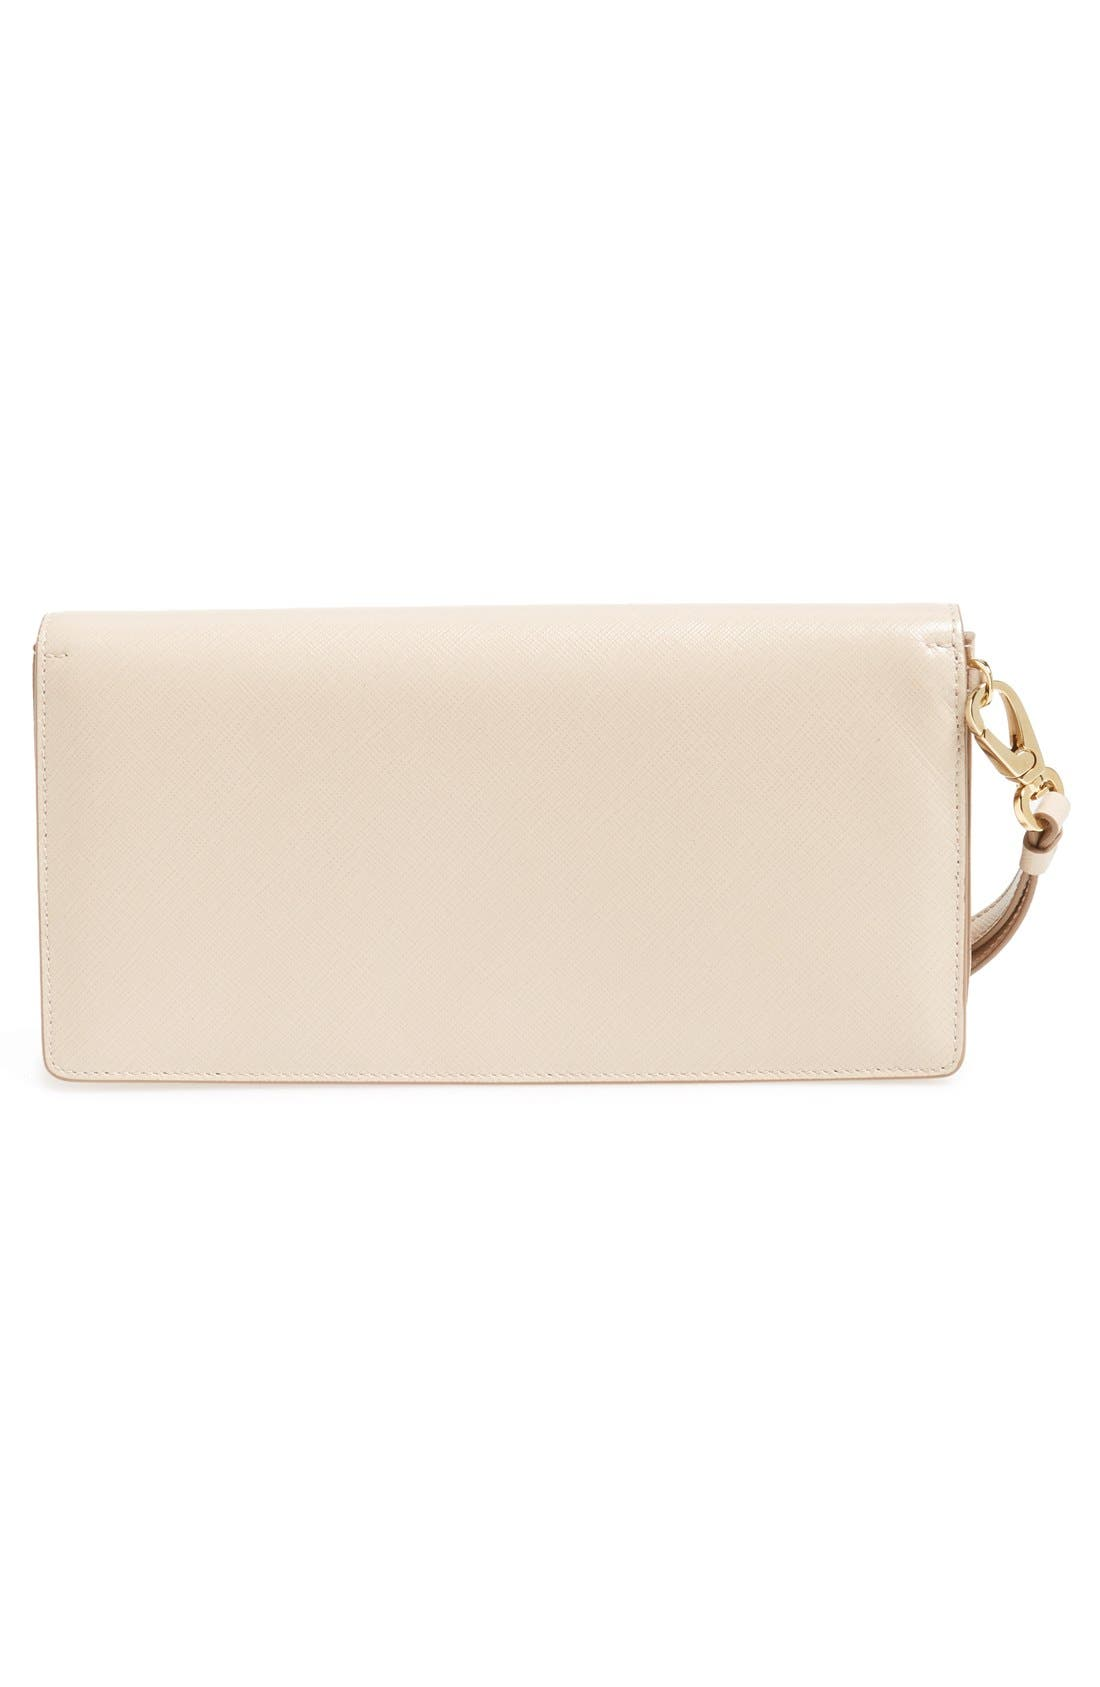 'Camy' Clutch,                             Alternate thumbnail 3, color,                             250